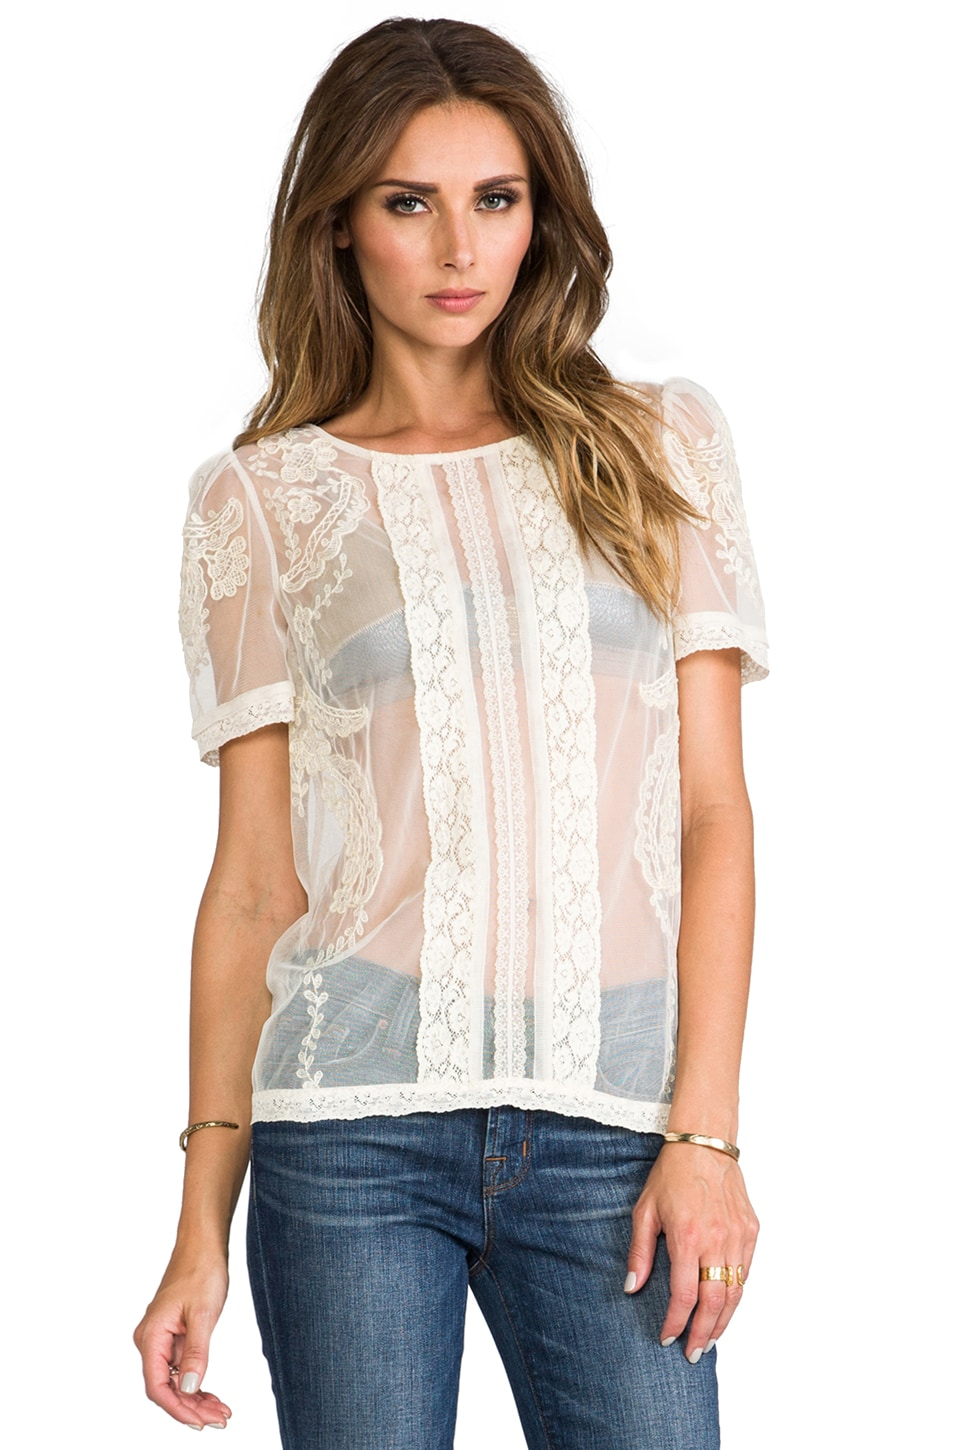 Alice by Temperley Botanical Top in Ivory